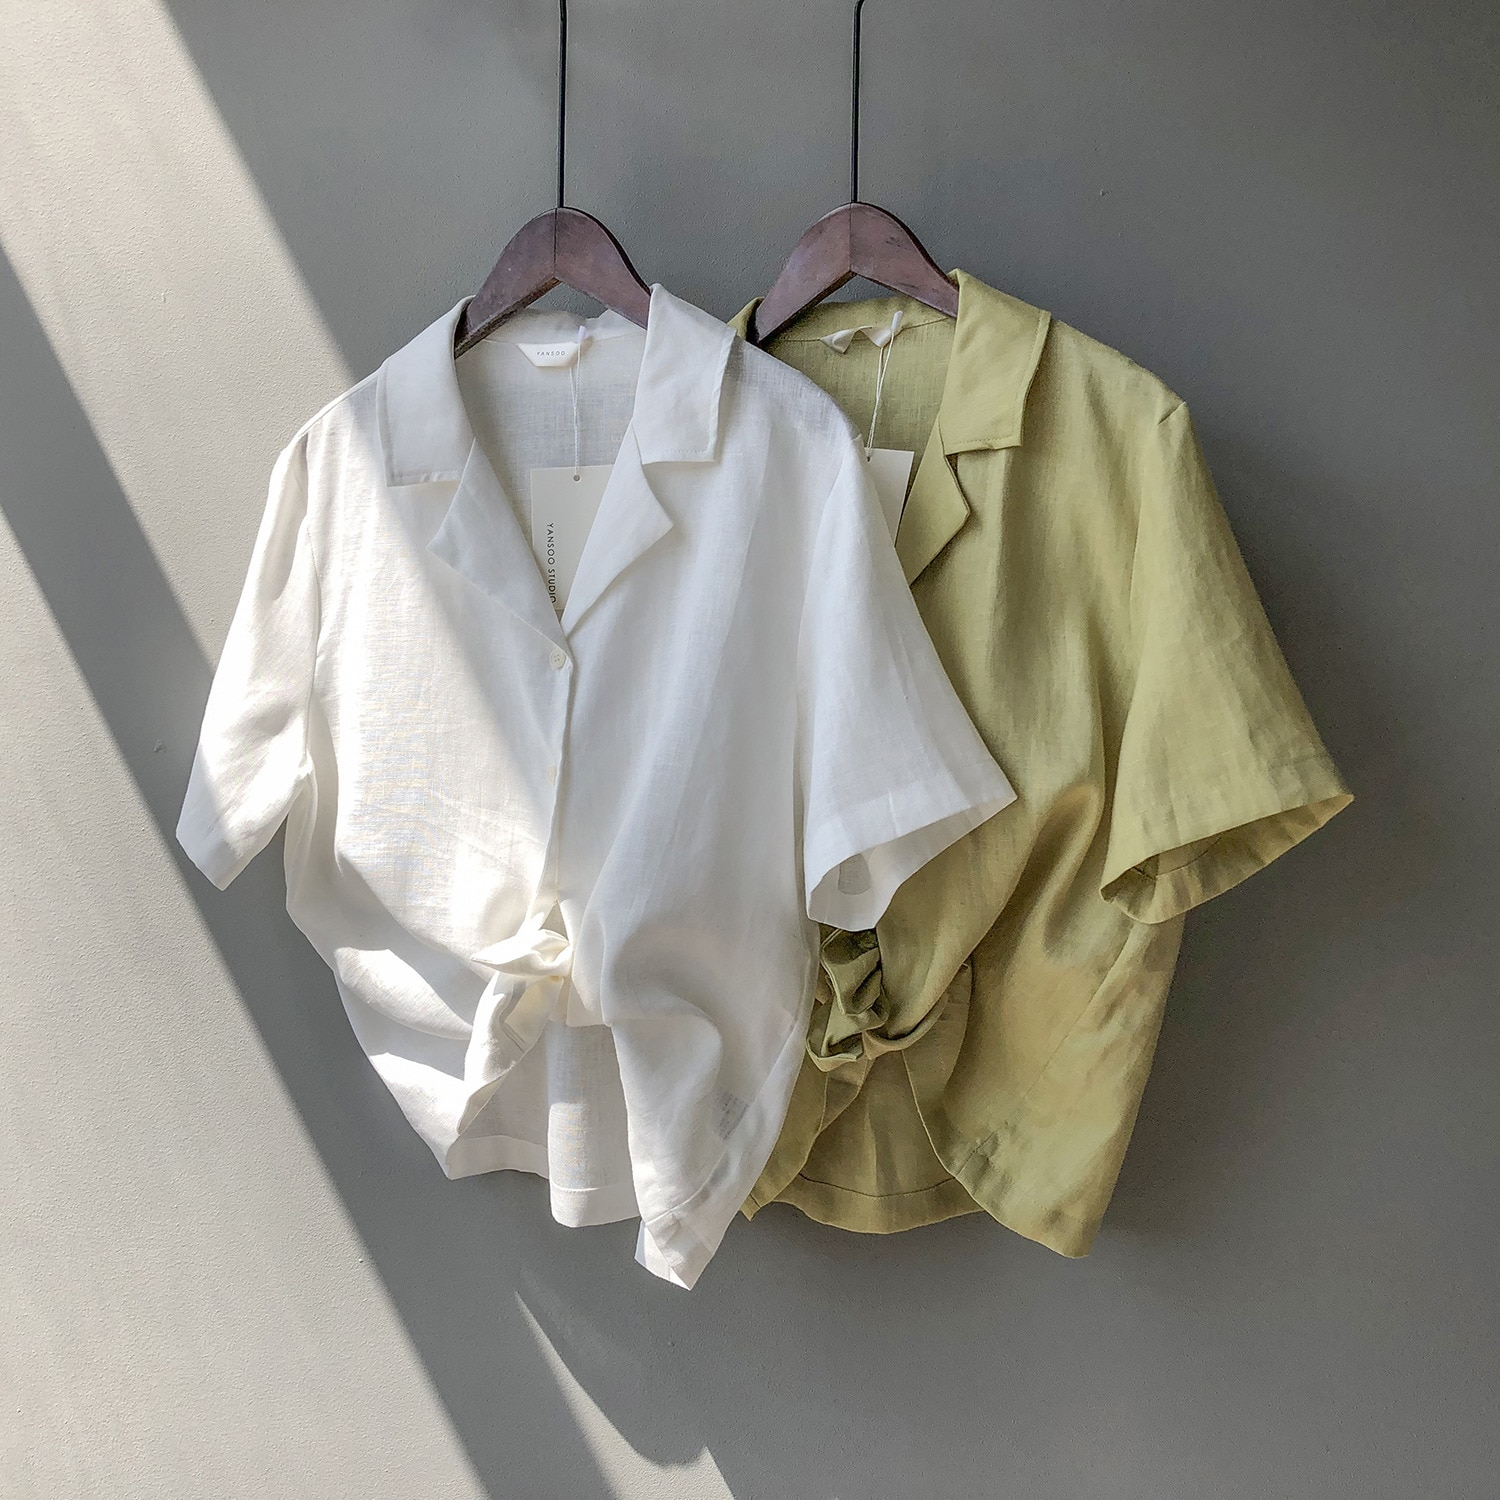 CMAZ Flax short sleeve shirt female han edition loosely contracted the new shirt suit collar blouse